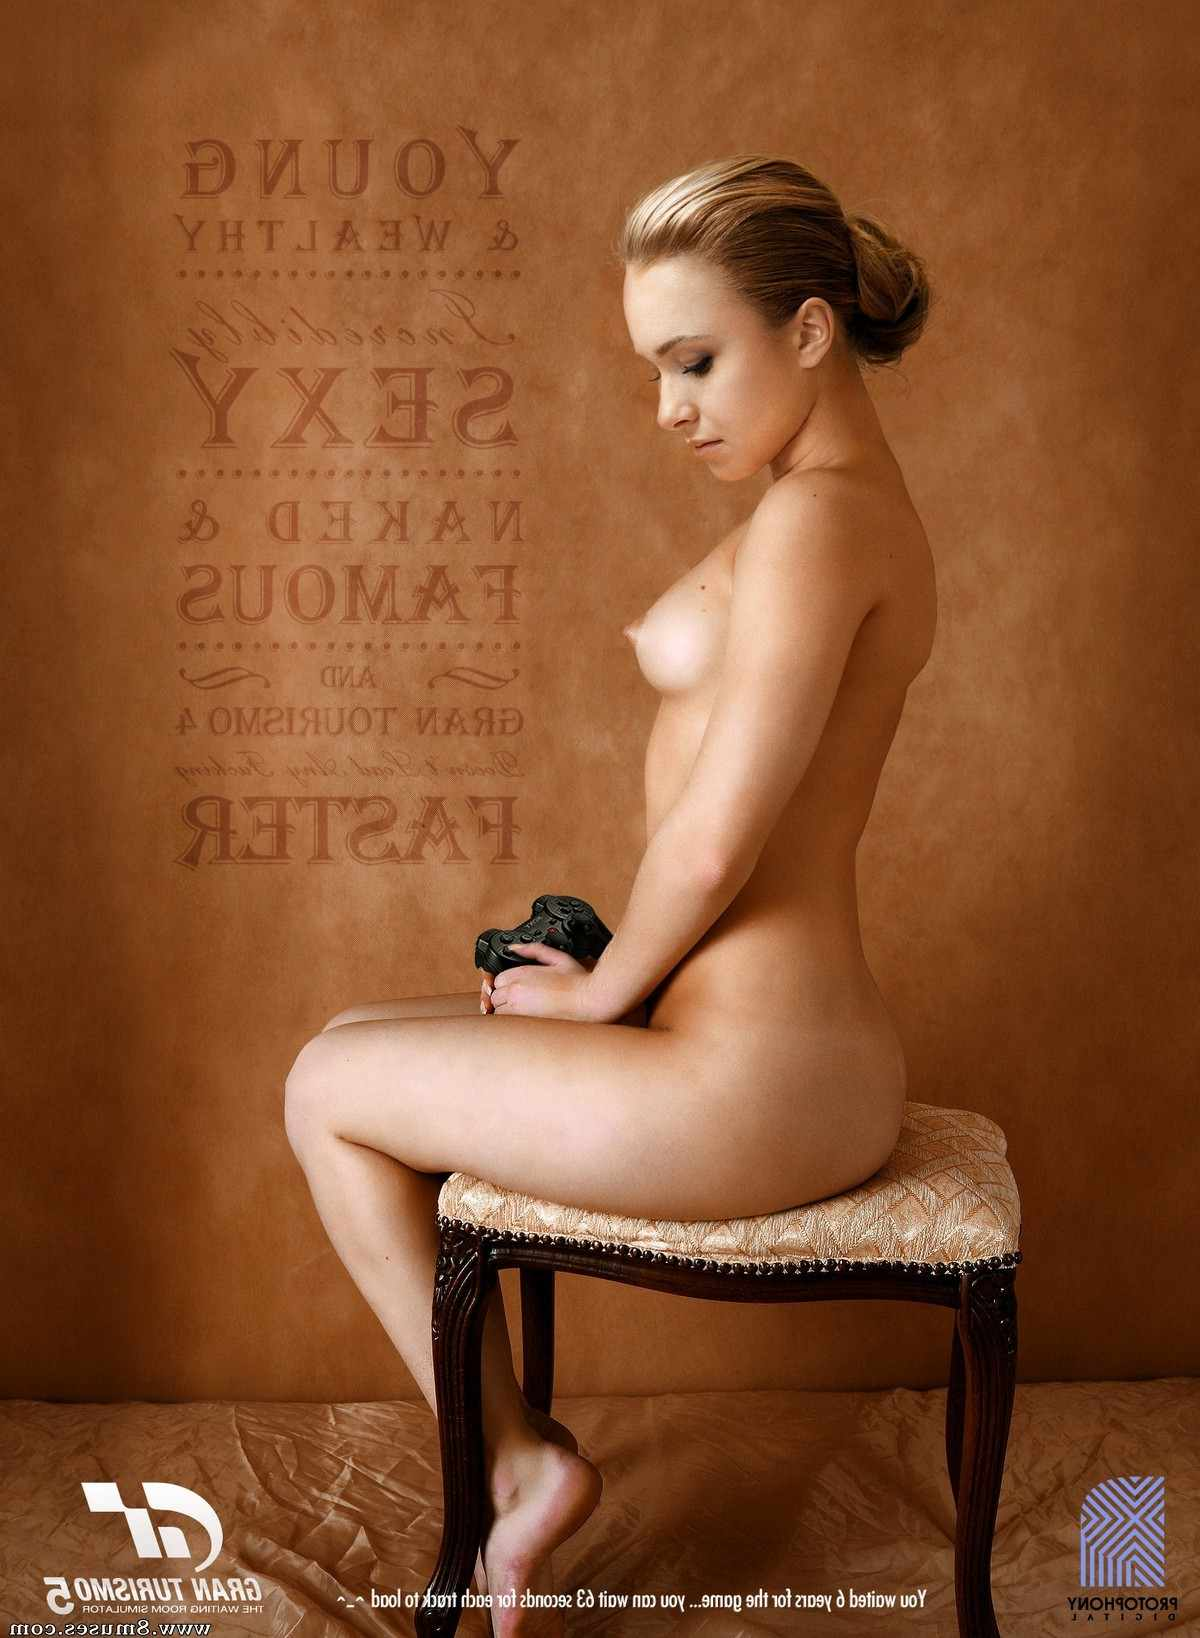 Fake-Celebrities-Sex-Pictures/Hayden-Panettiere Hayden_Panettiere__8muses_-_Sex_and_Porn_Comics.jpg